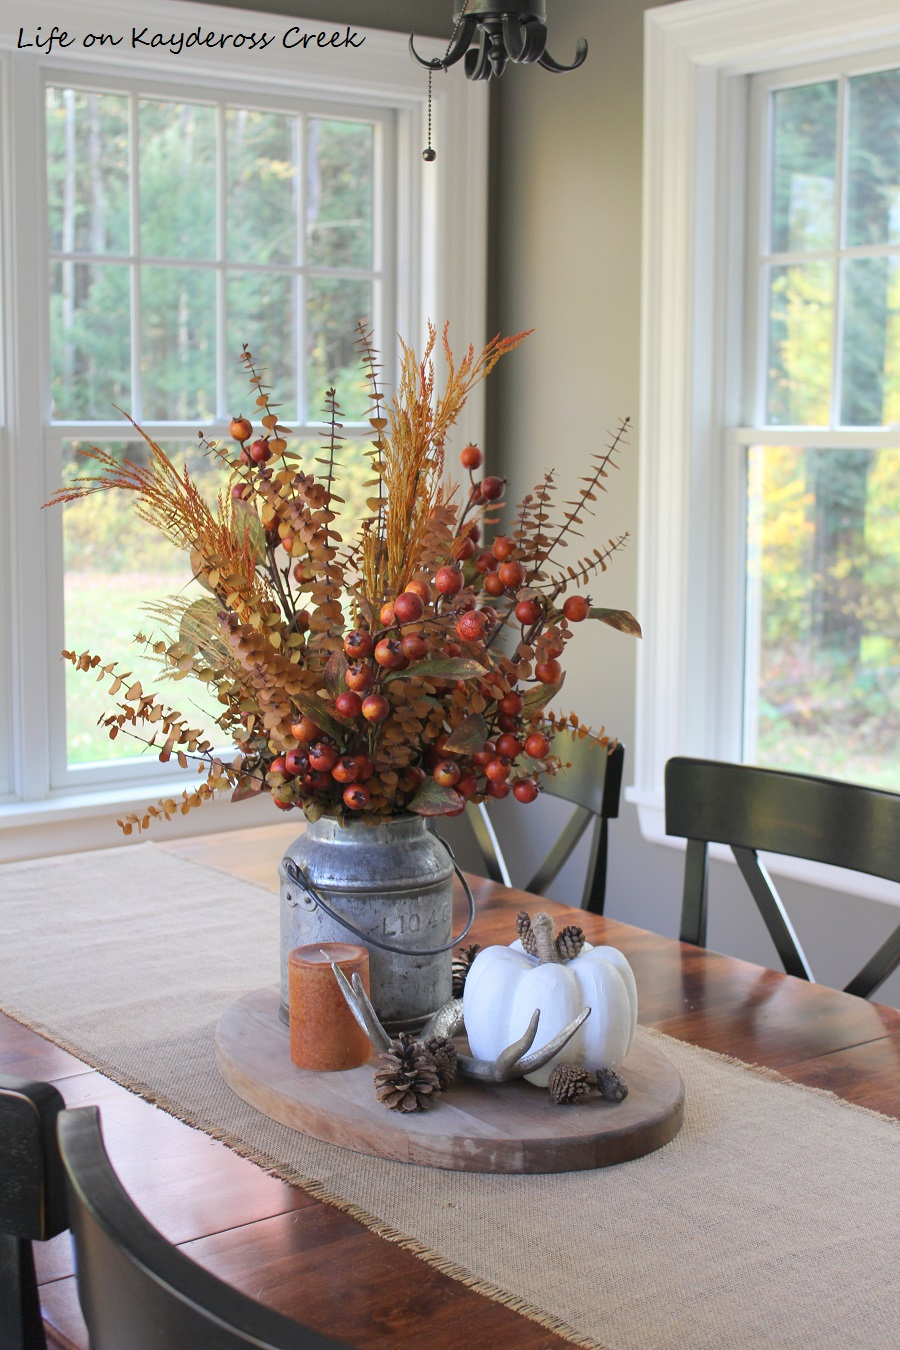 Farmhouse Fall Home Tour - Dining room centerpiece - Life on Kaydeross Creek